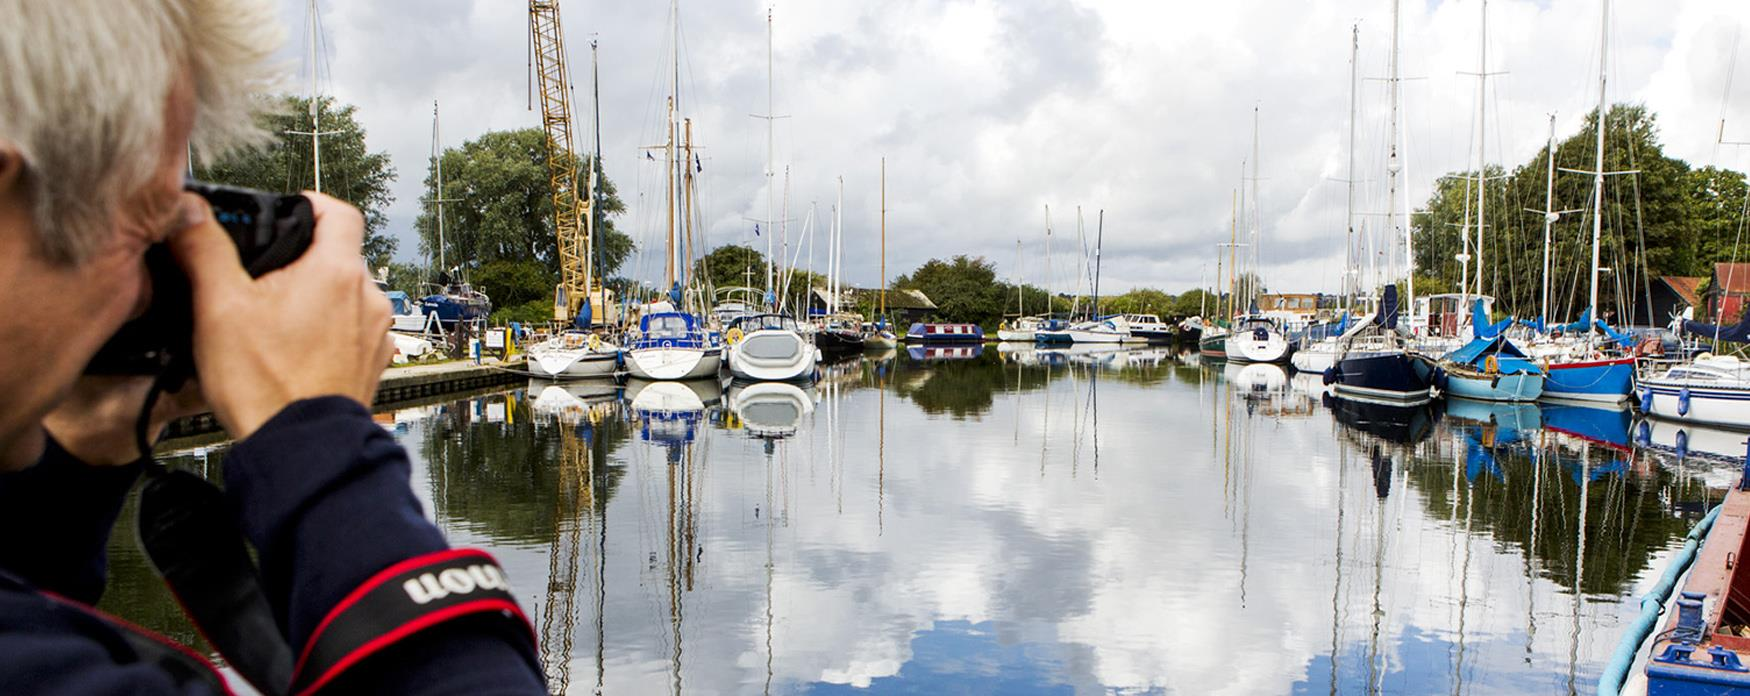 Chelmer and Blackwater Navigation - Heybridge